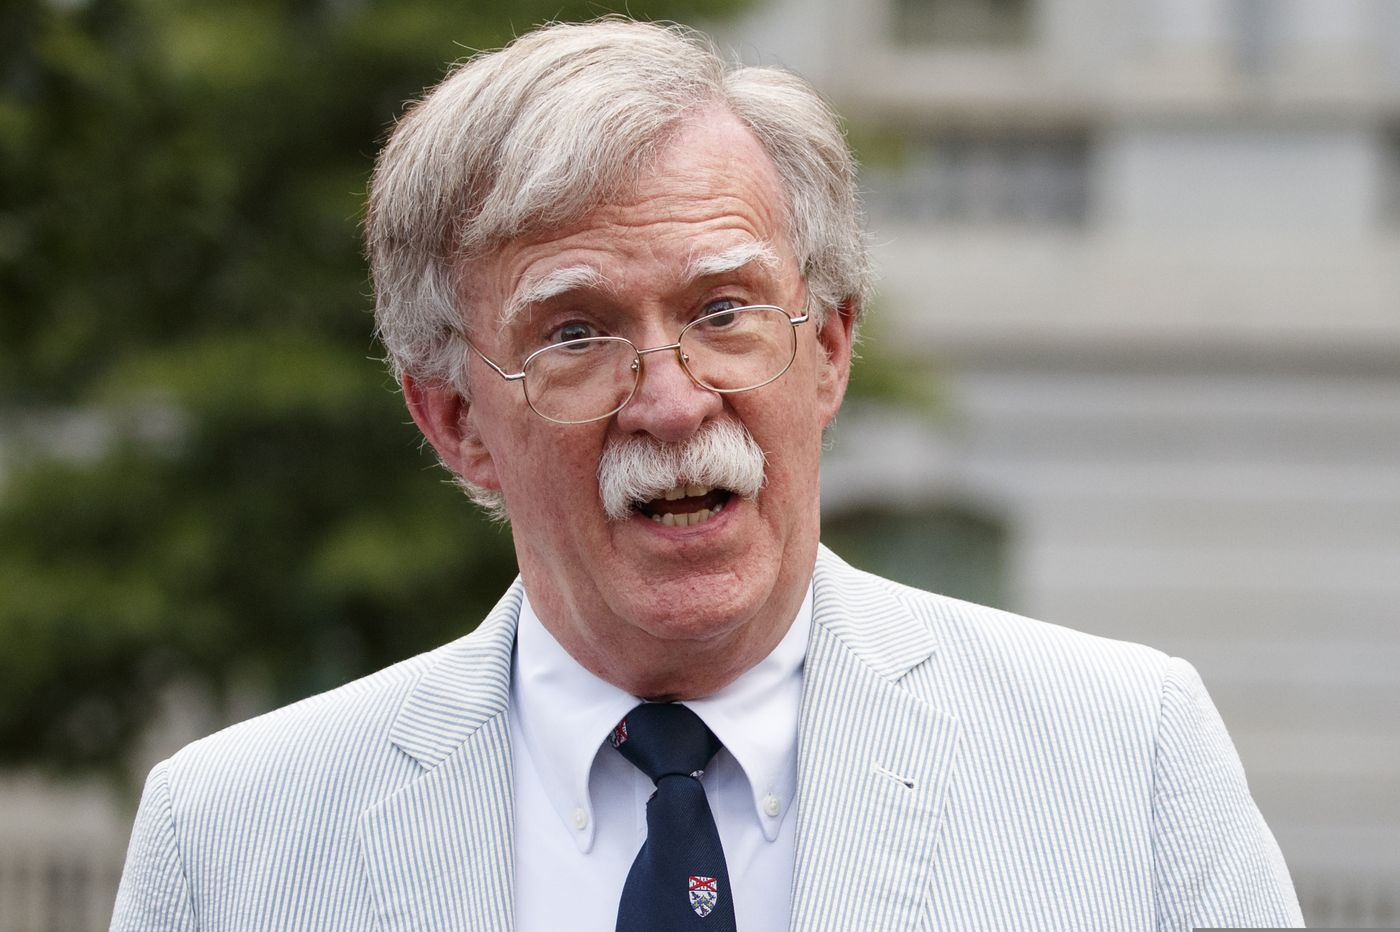 GOP defends Trump after John Bolton book draft says he told him of explicit quid pro quo